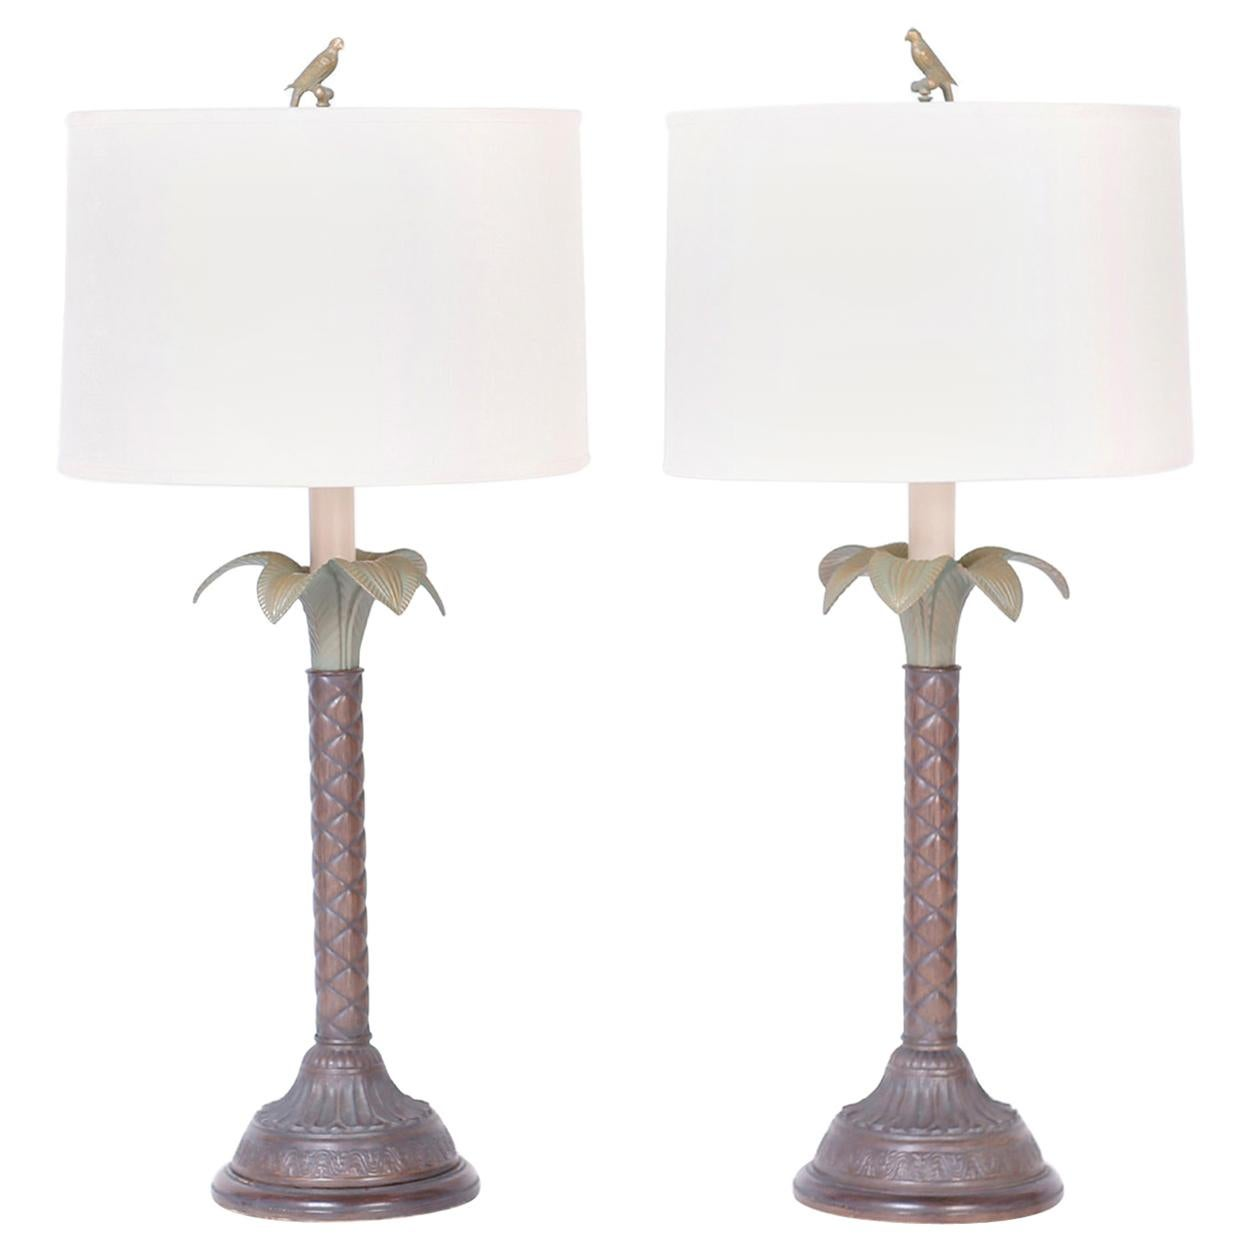 Midcentury Pair of Palm Tree Tole Table Lamps